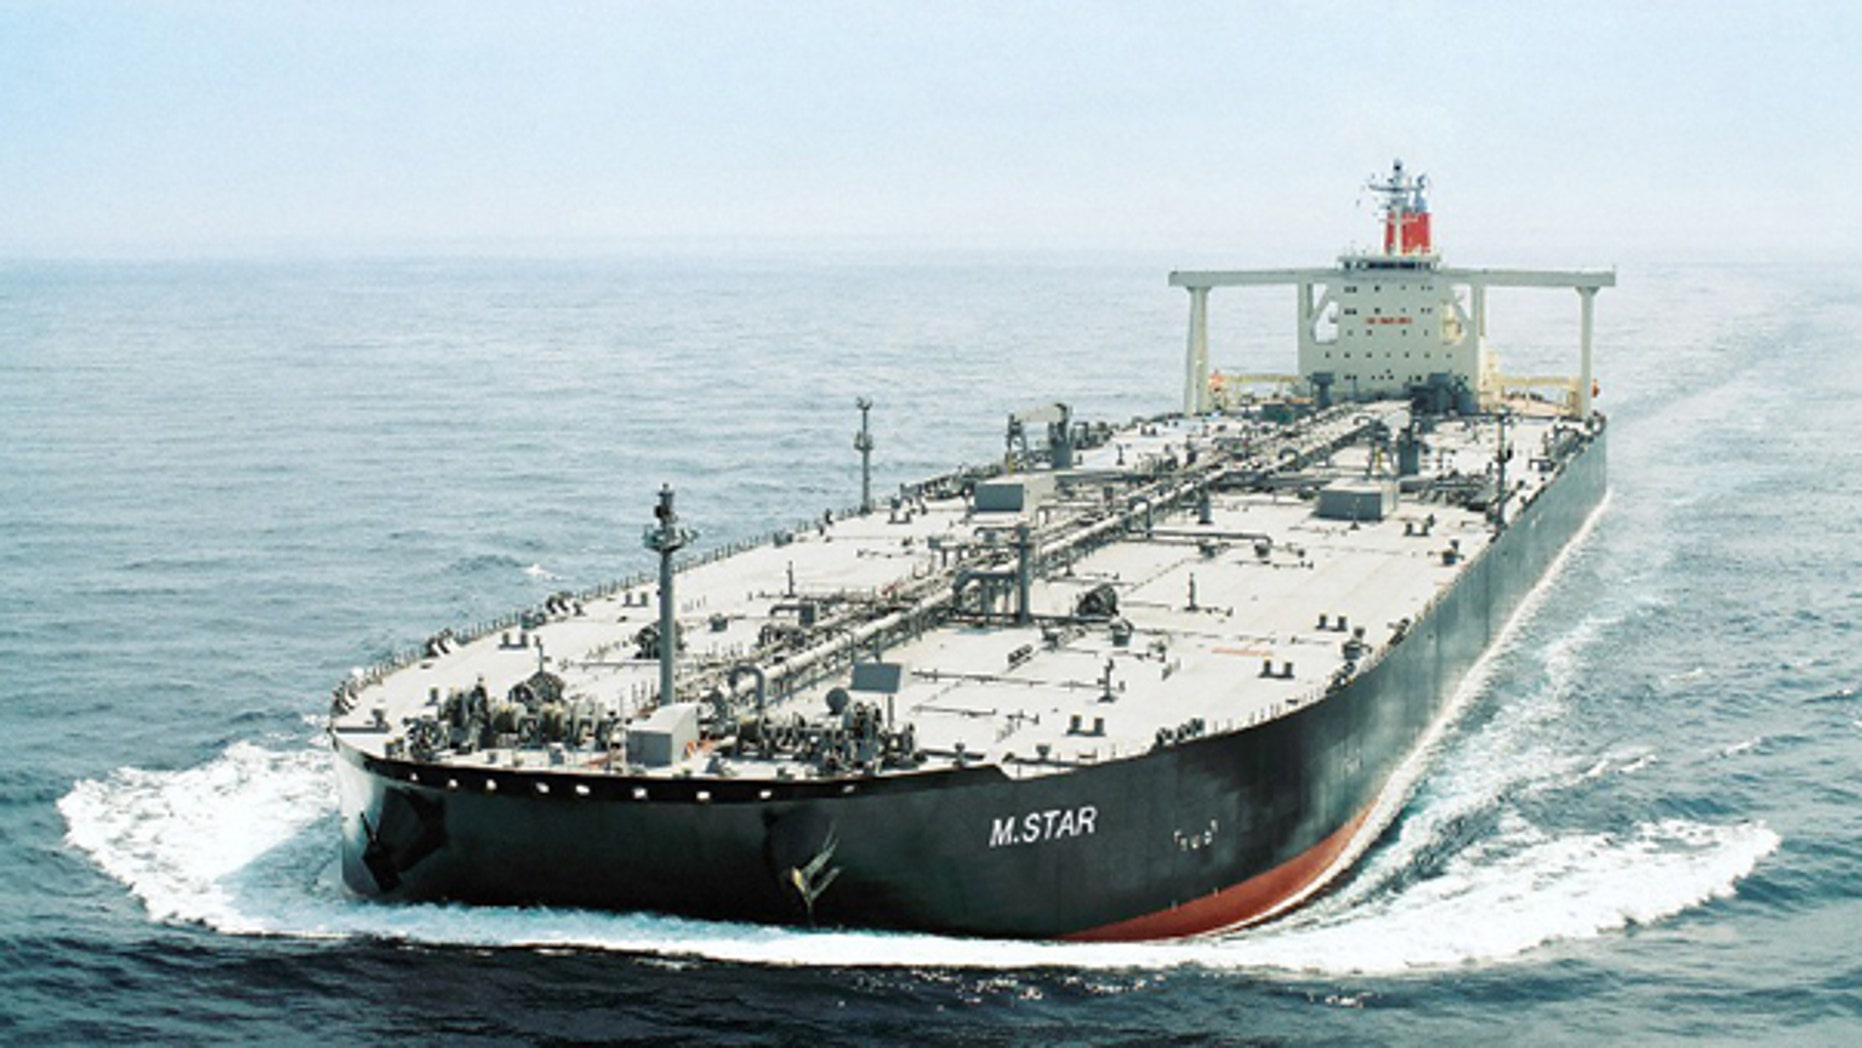 In this undated photo released by Mitsui O.S.K. Lines in Tokyo, Japan's shipping company Mitsui O.S.K. Lines' tanker M. Star is shown. The Japanese shipping company said an explosion, suspected to be an attack, damaged the oil tanker near the mouth of the Persian Gulf on July 28. (AP)